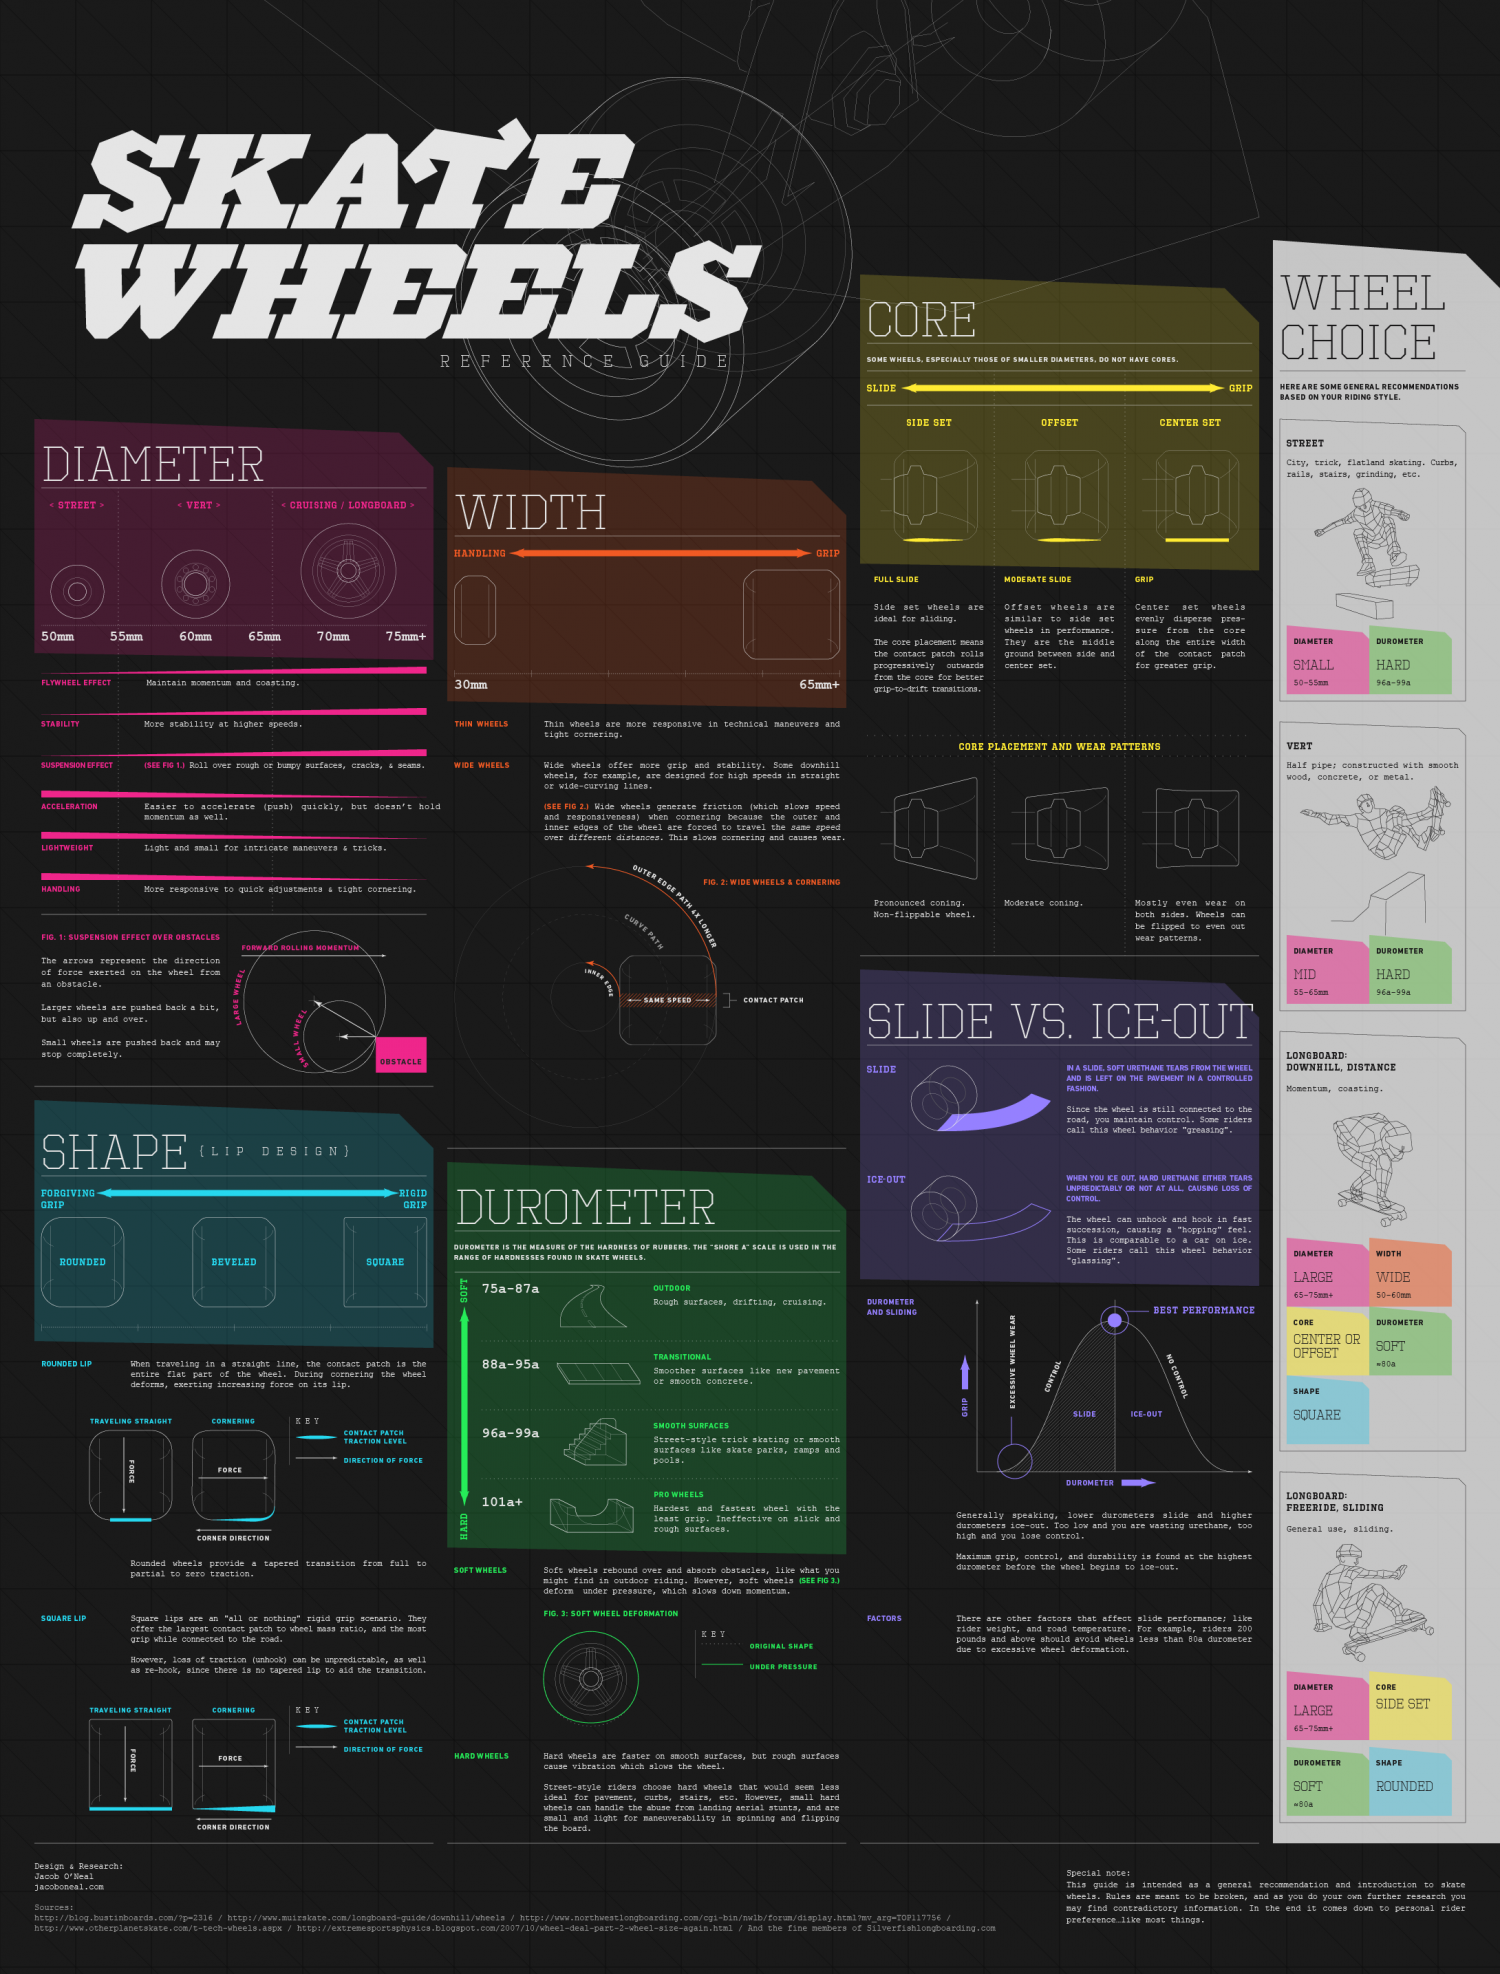 Skate Wheels reference guide Infographic